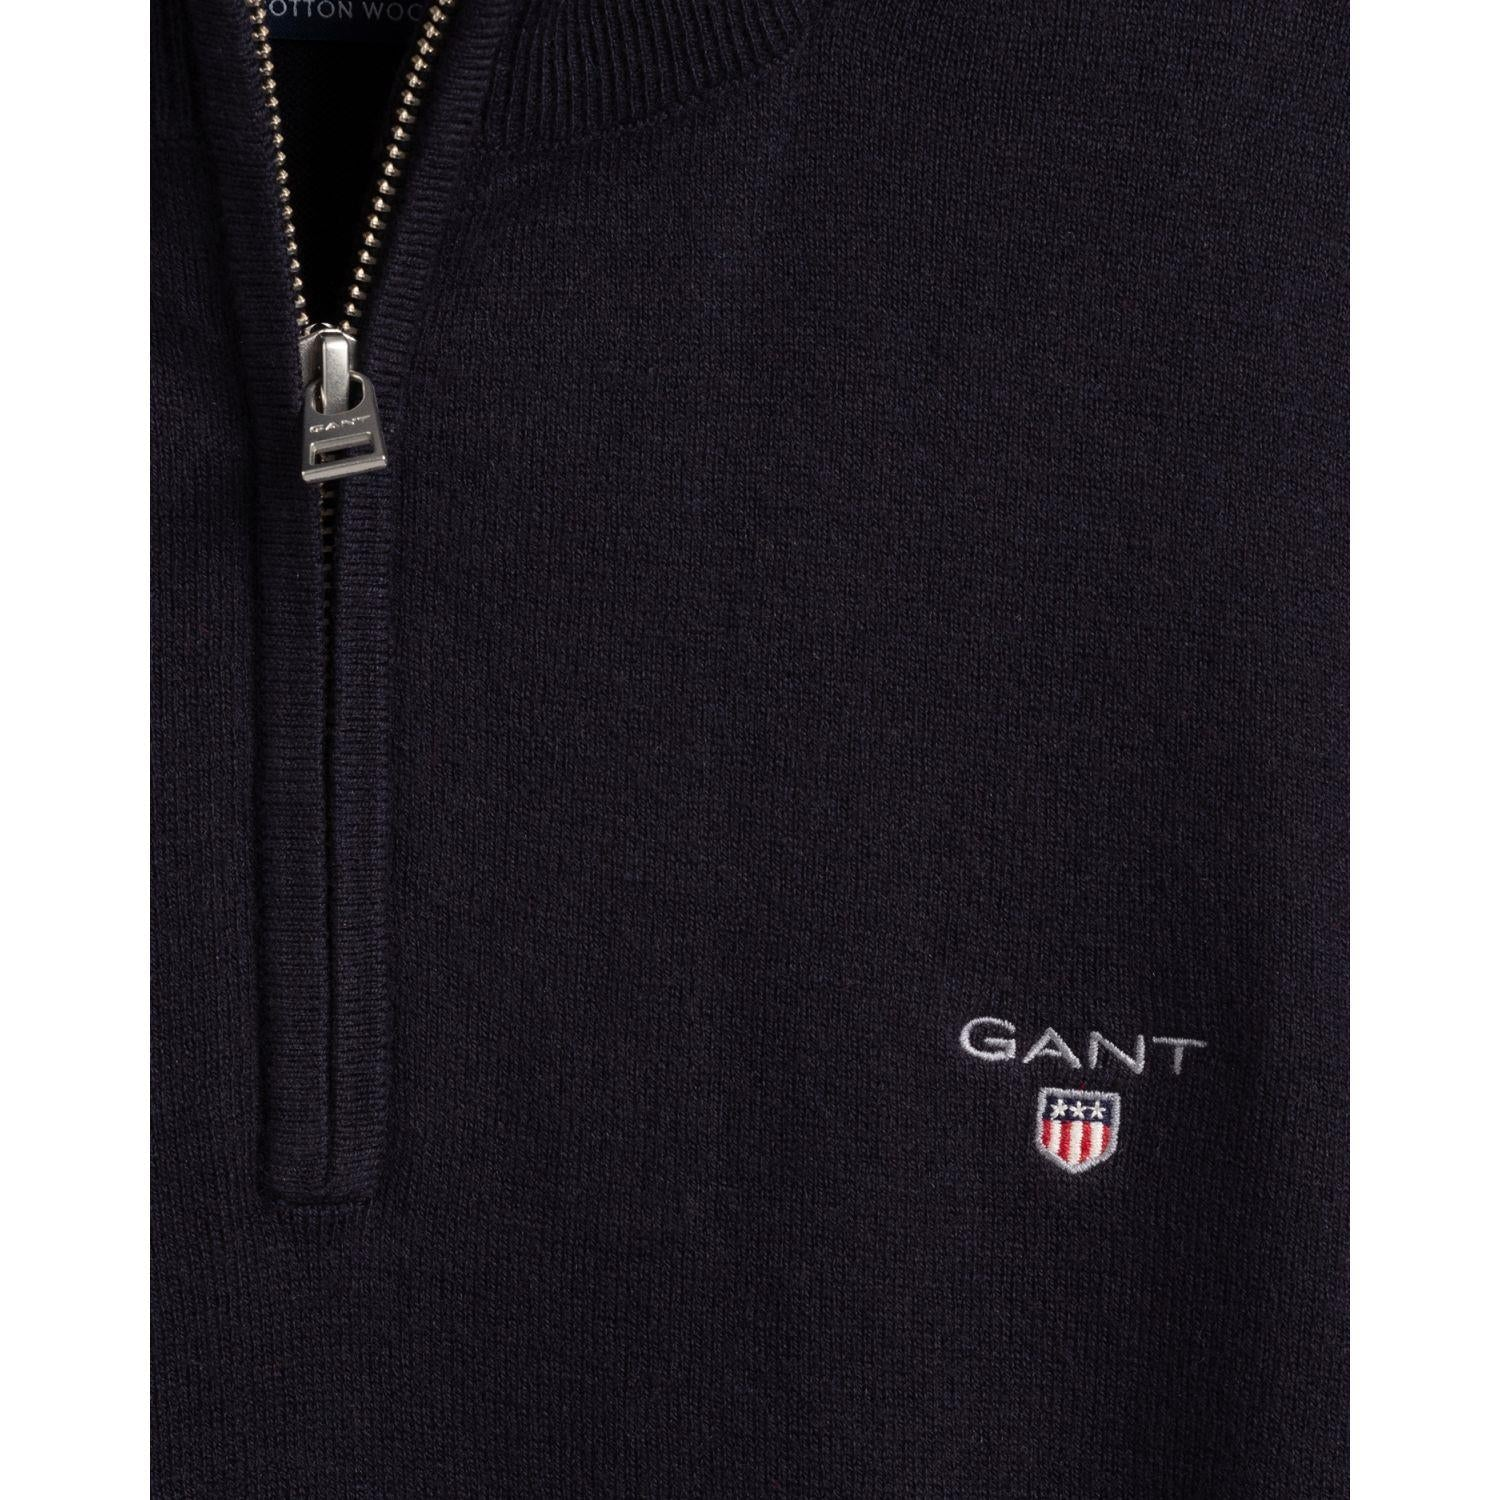 Gant Cotton Wool Halz Zip